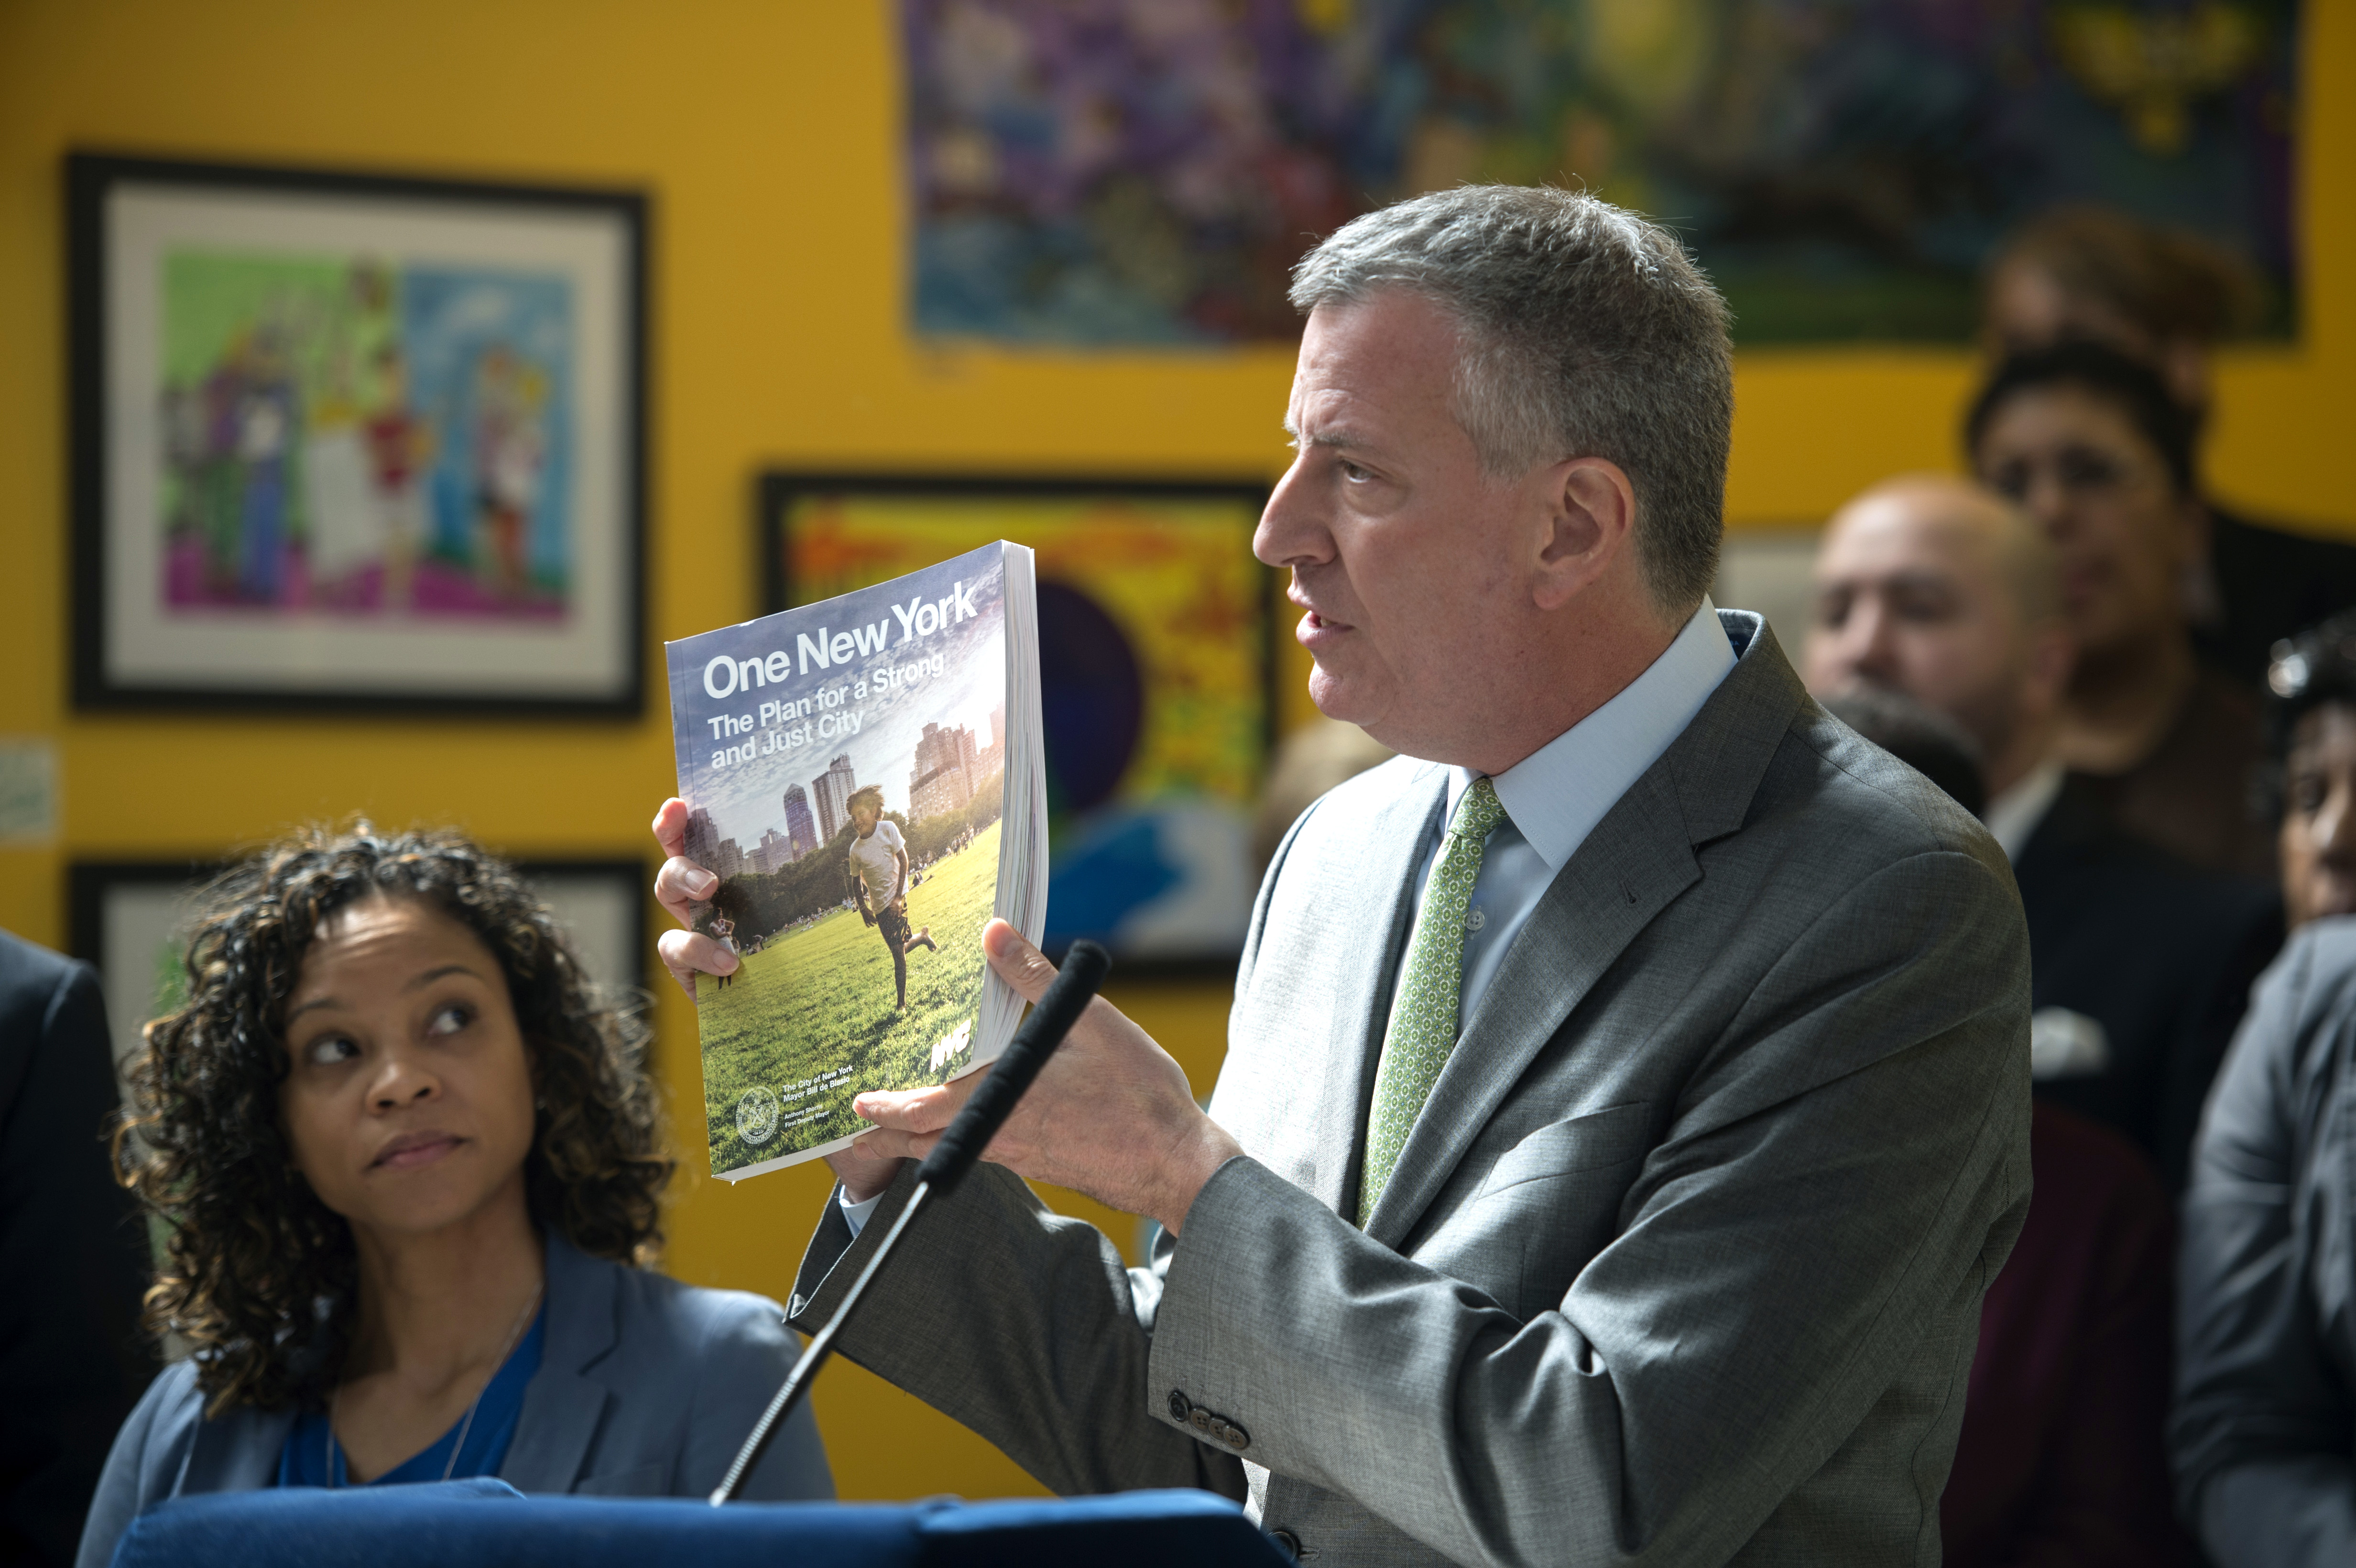 Mayor Bill de Blasio at the roll-out of his sustainability report, One New York.